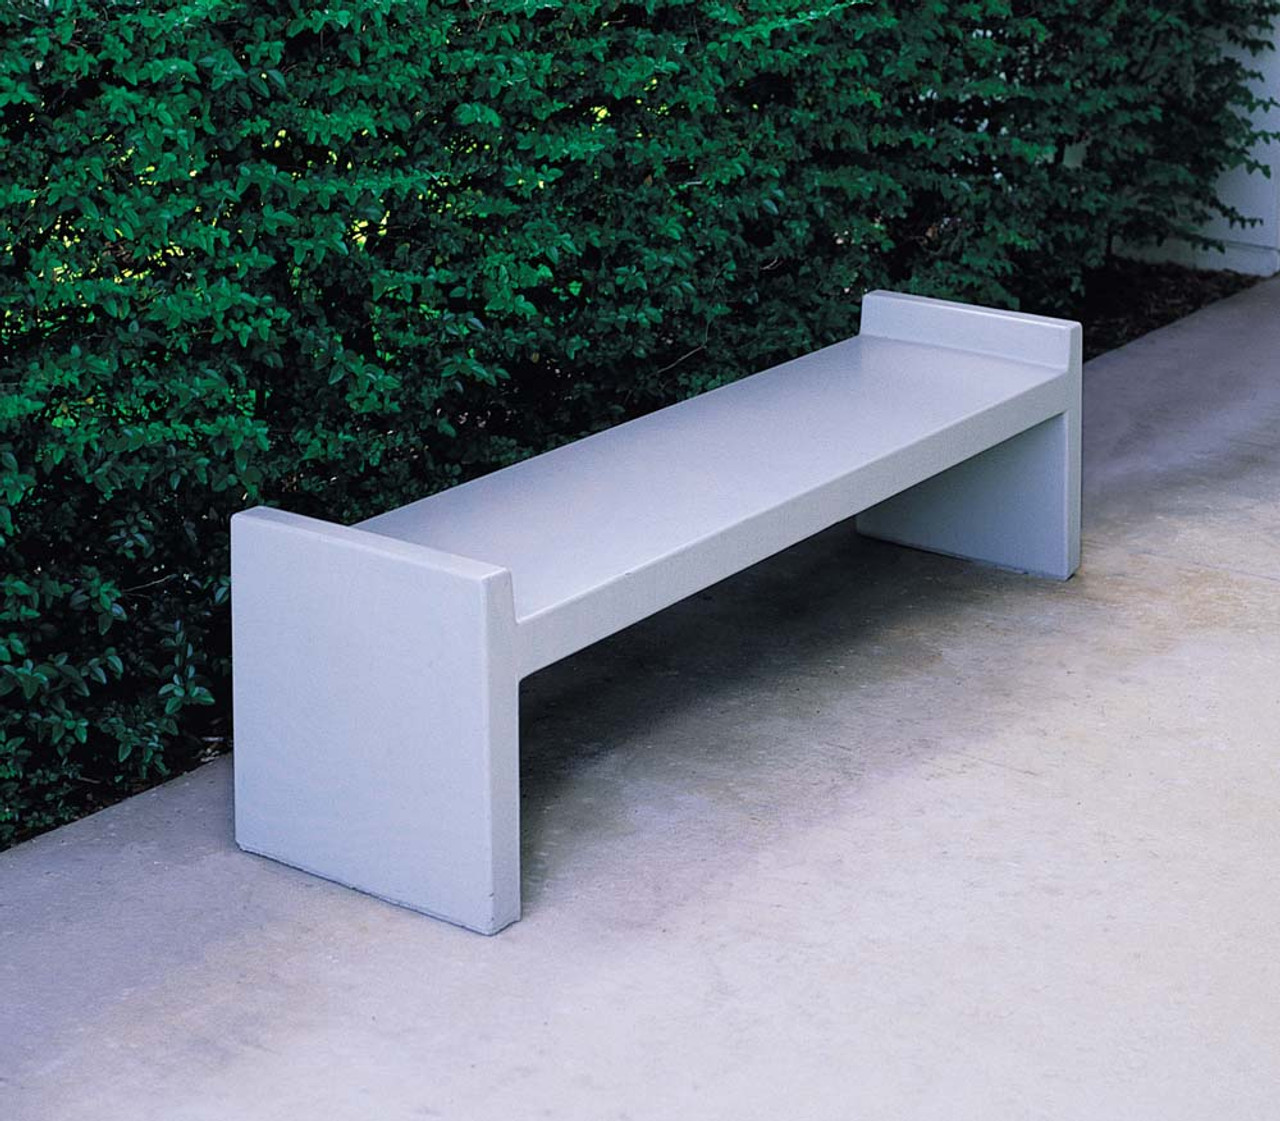 6 Foot Indoor Outdoor Concrete Park Bench TF5025 Outside